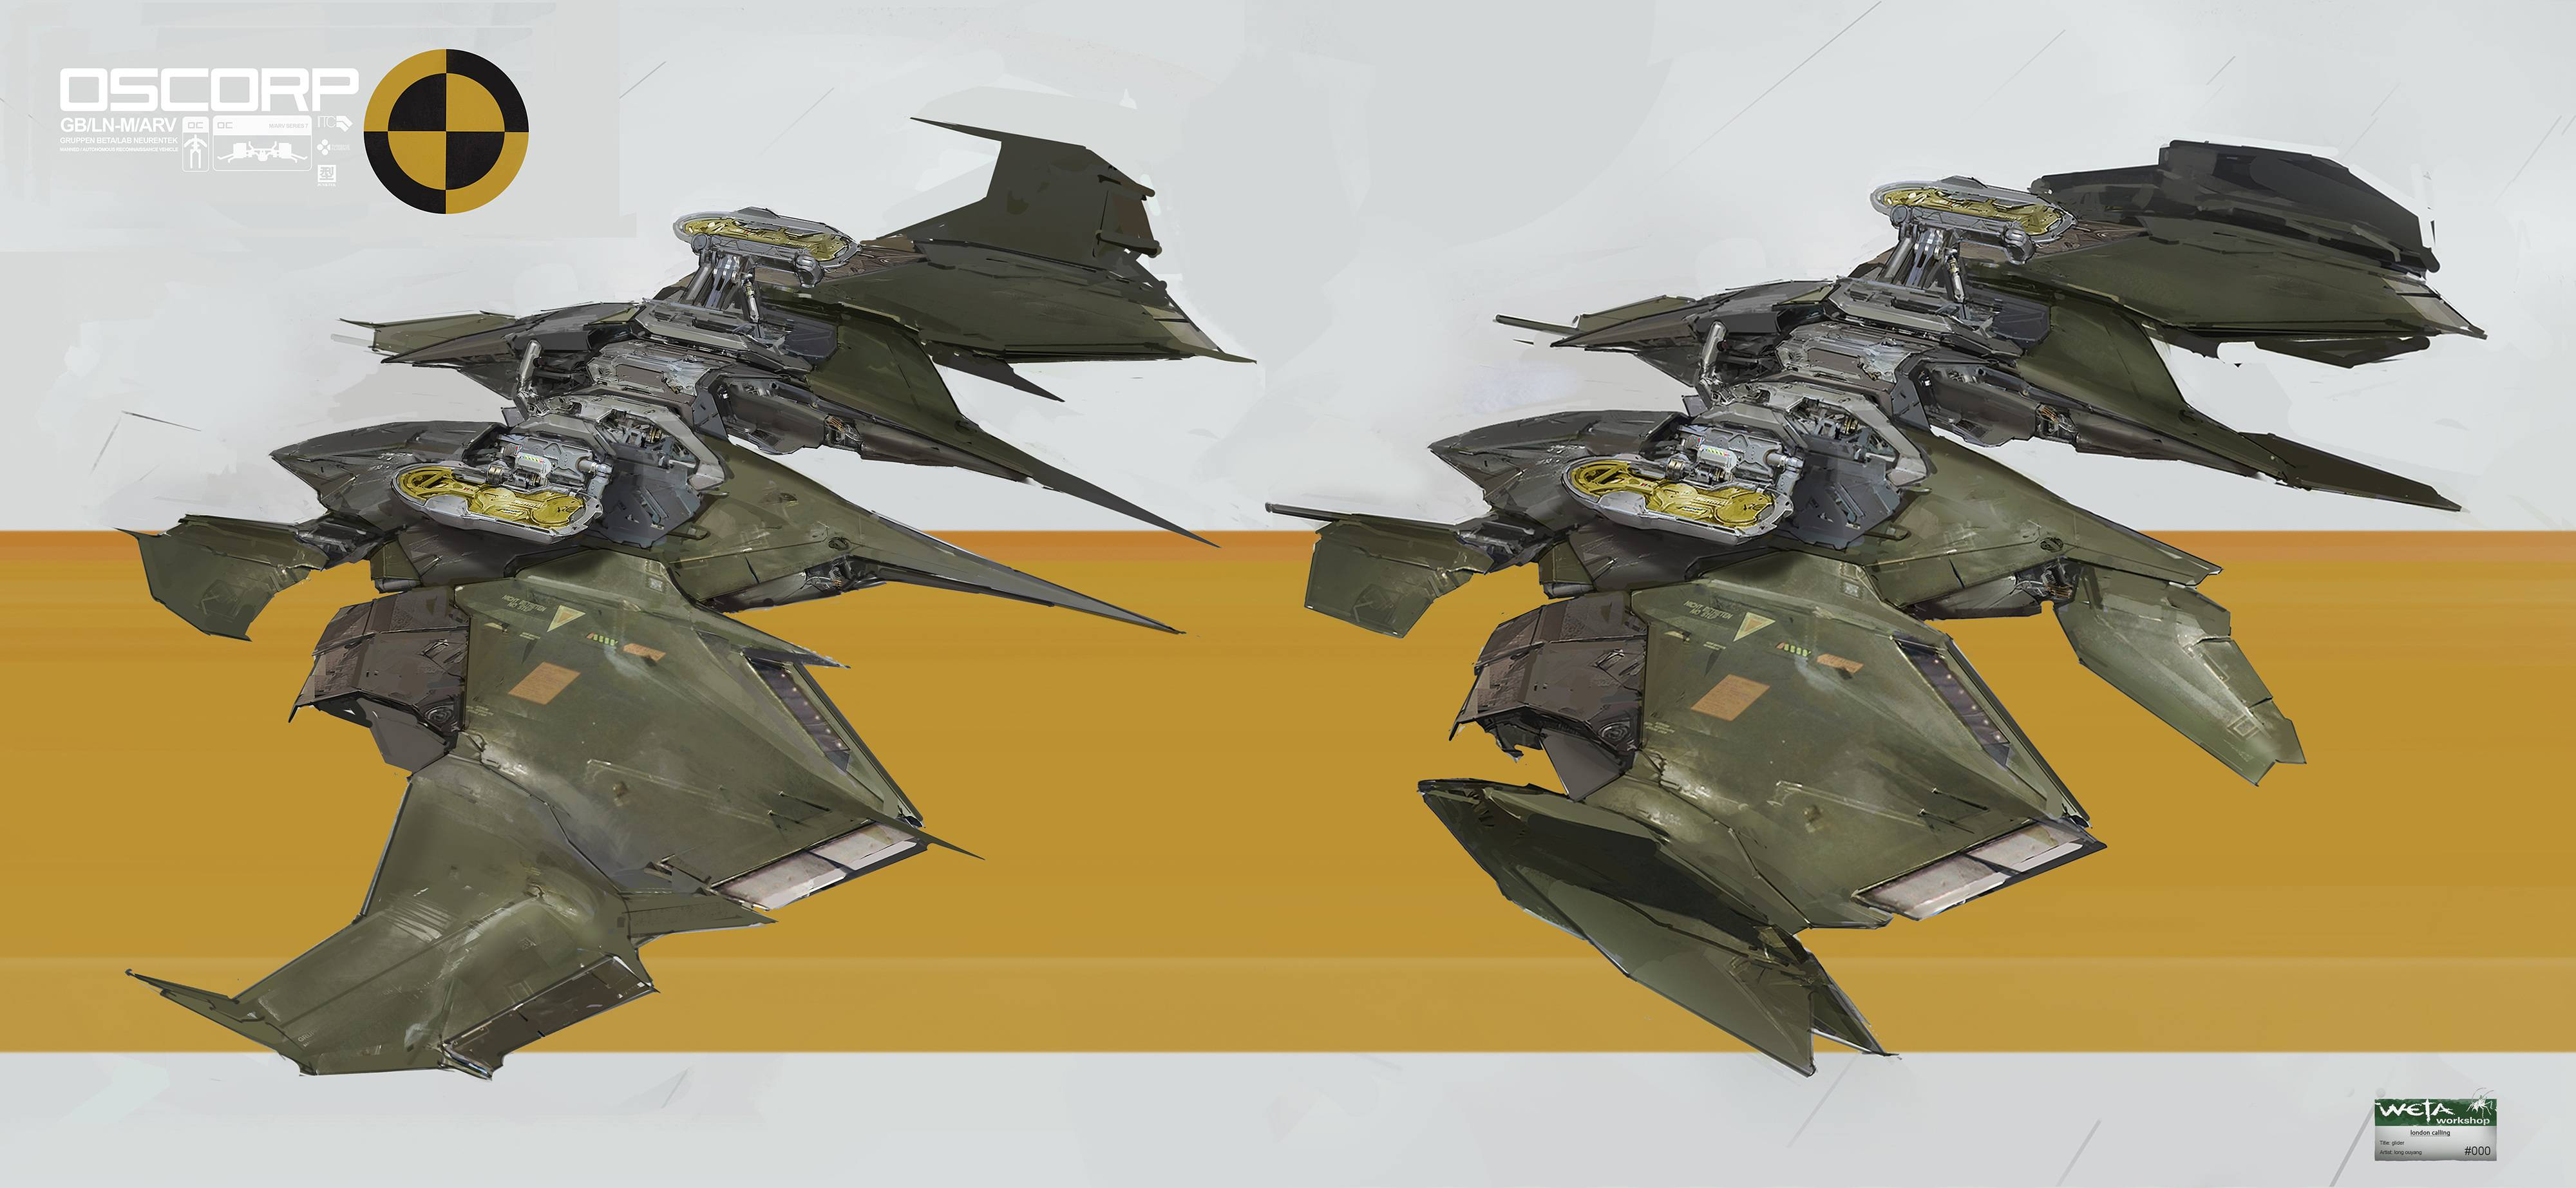 Green Goblin Concept Art For 'The Amazing Spider-Man 2'